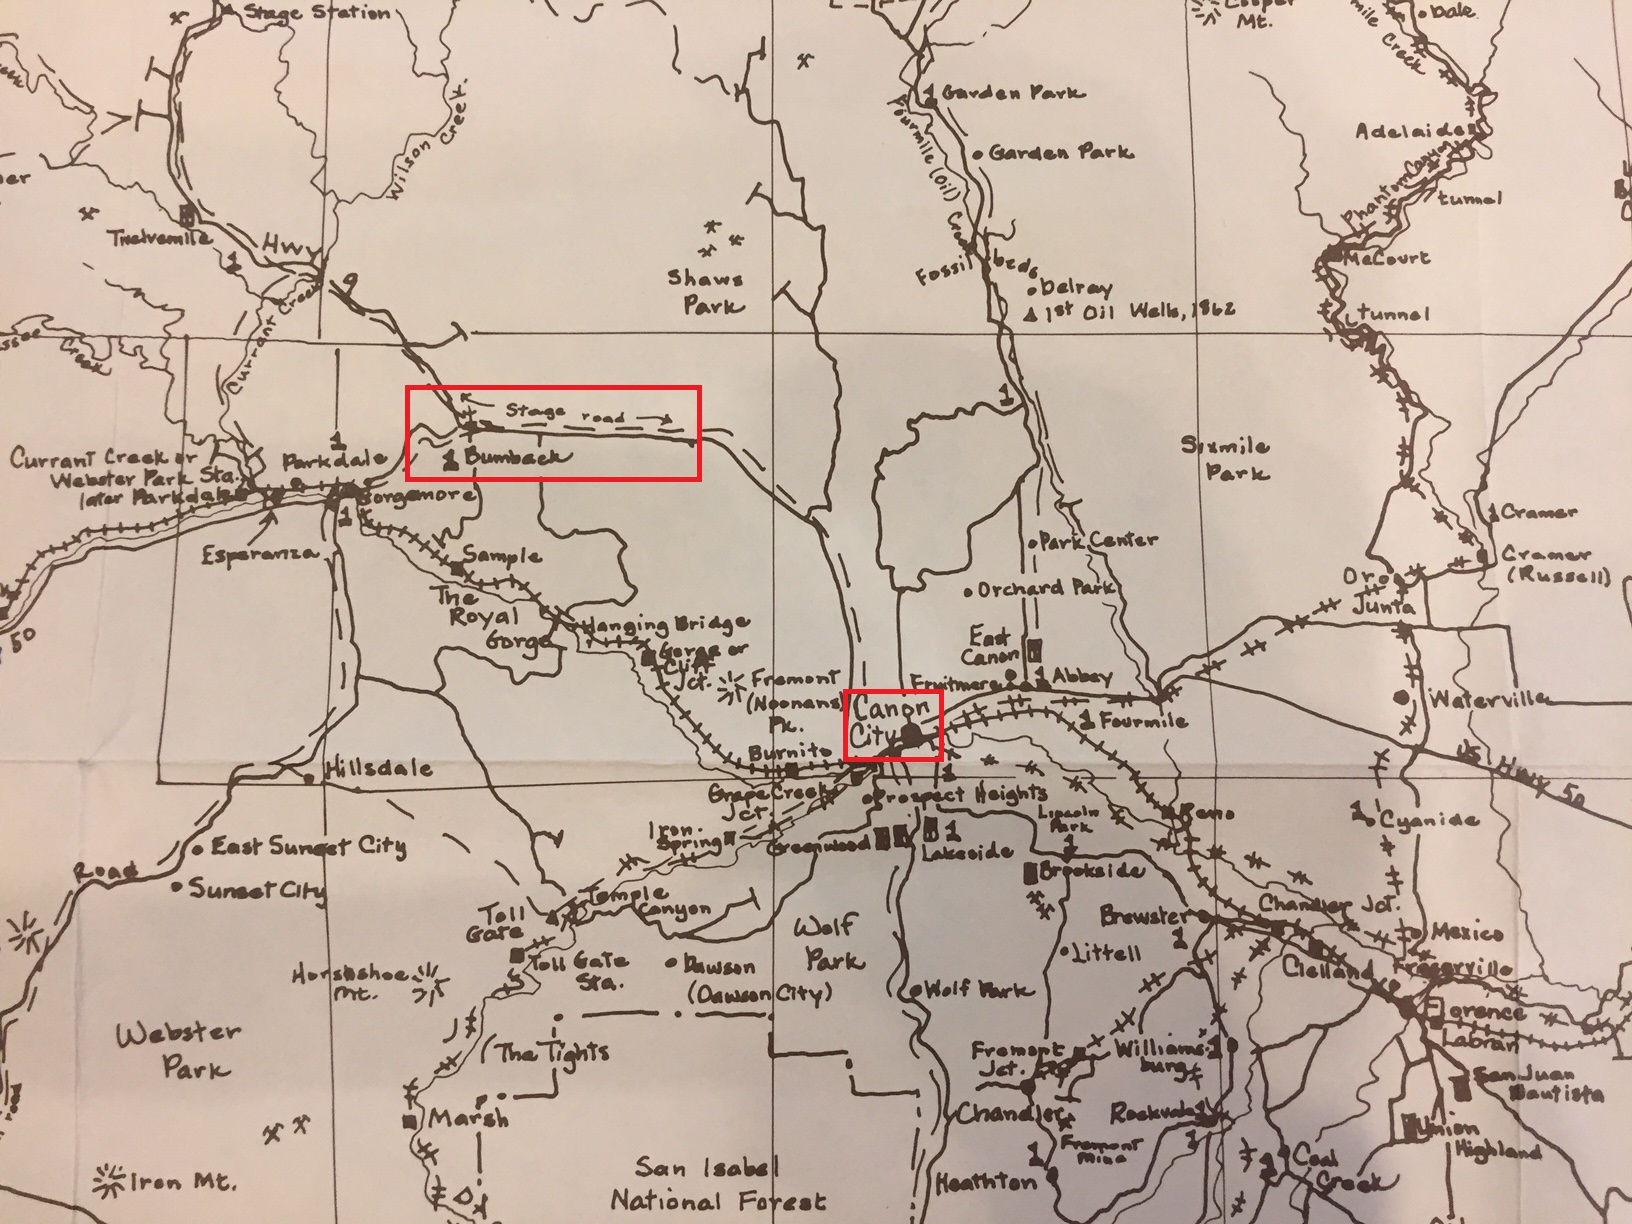 """Location of Bumback Springs on """"Historical Map of Fremont County"""" by Nancy C. Hirleman; Royal Gorge Regional Museum & History Center archive"""